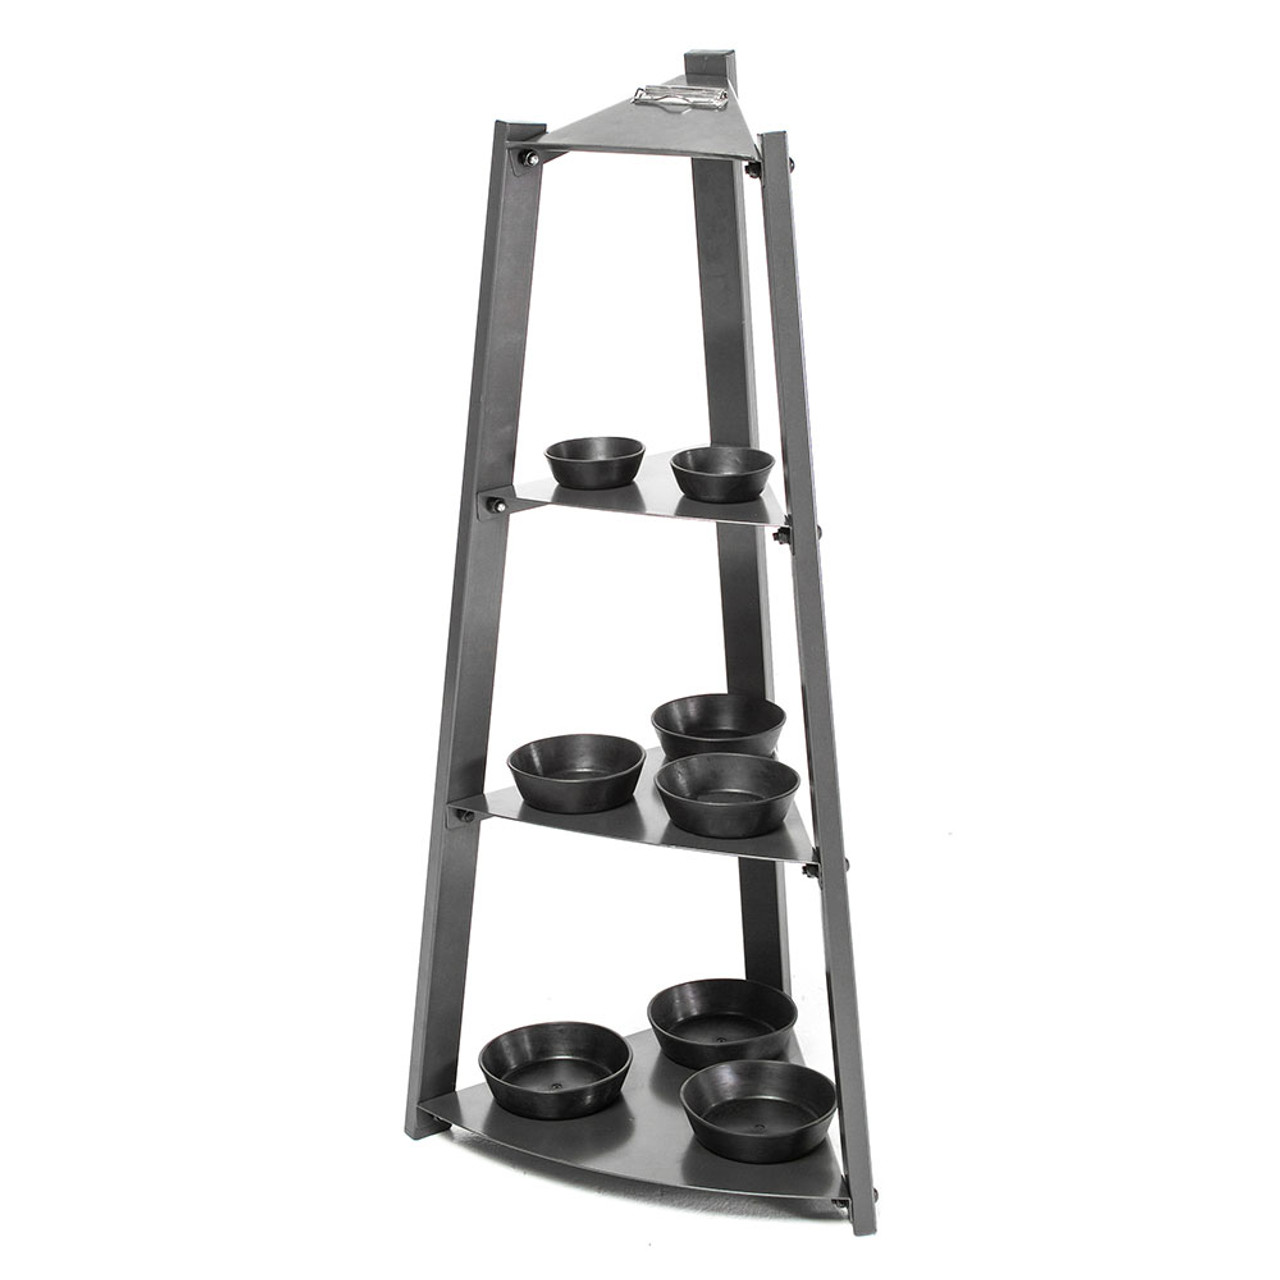 The Apex 3 Tier Kettlebell Rack includes trays to keep kettlebells from sliding